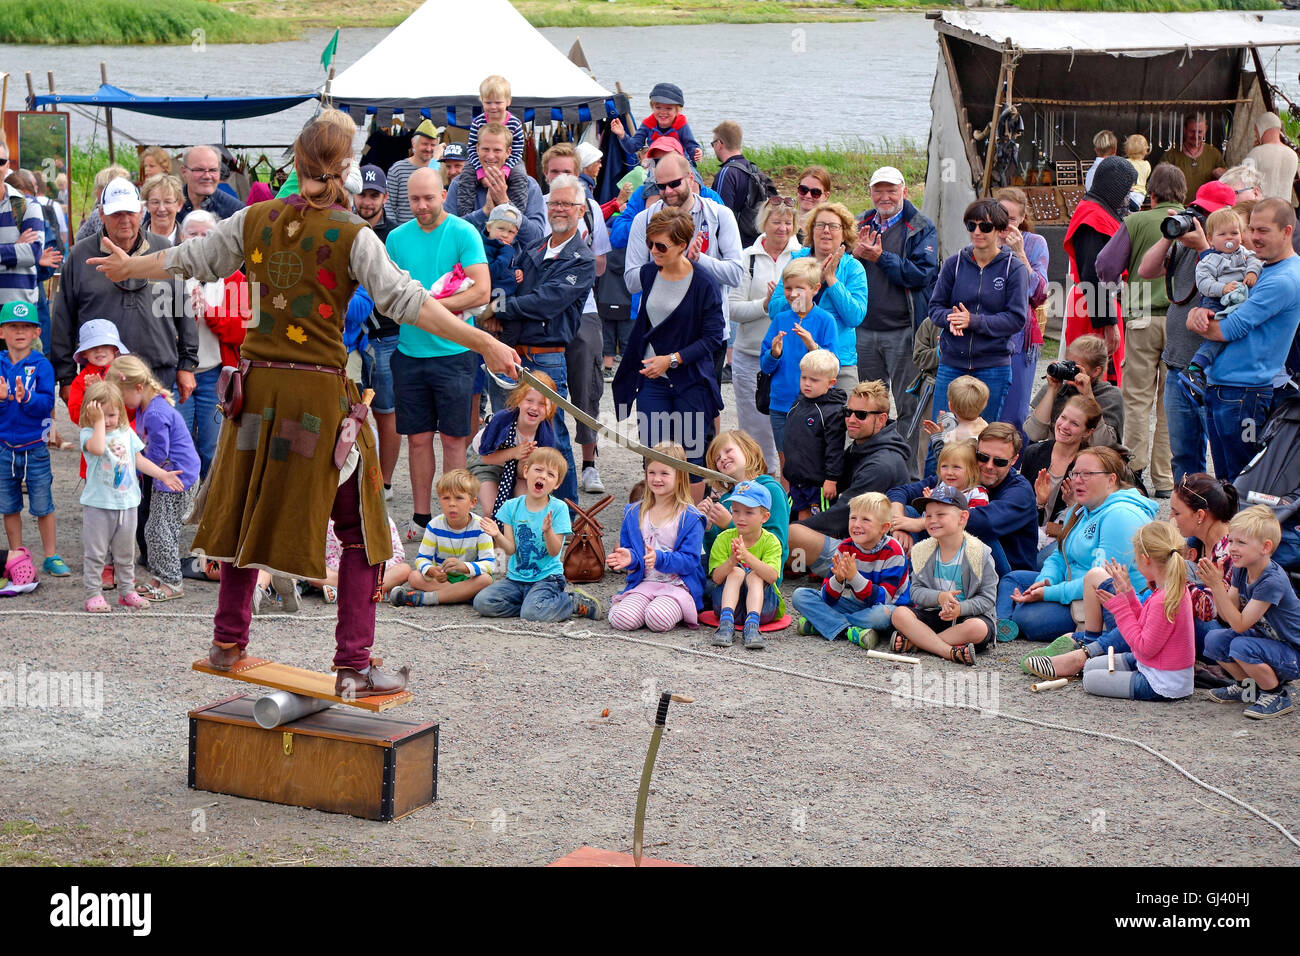 A juggler entertains audience while performing outdoors. - Stock Image